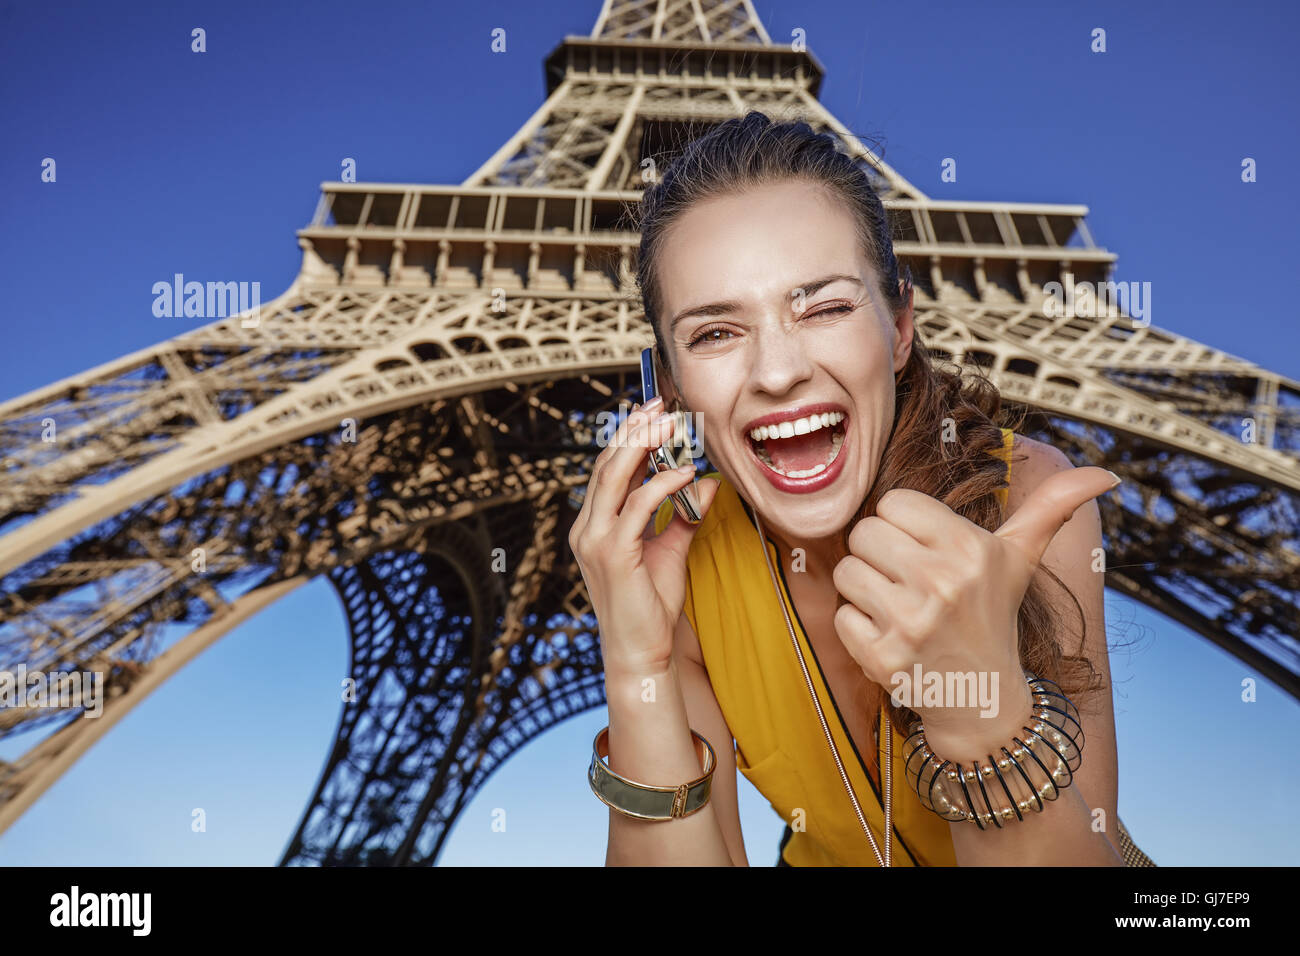 Touristy, without doubt, but yet so fun. happy young woman showing thumbs up and speaking on a mobile phone against - Stock Image